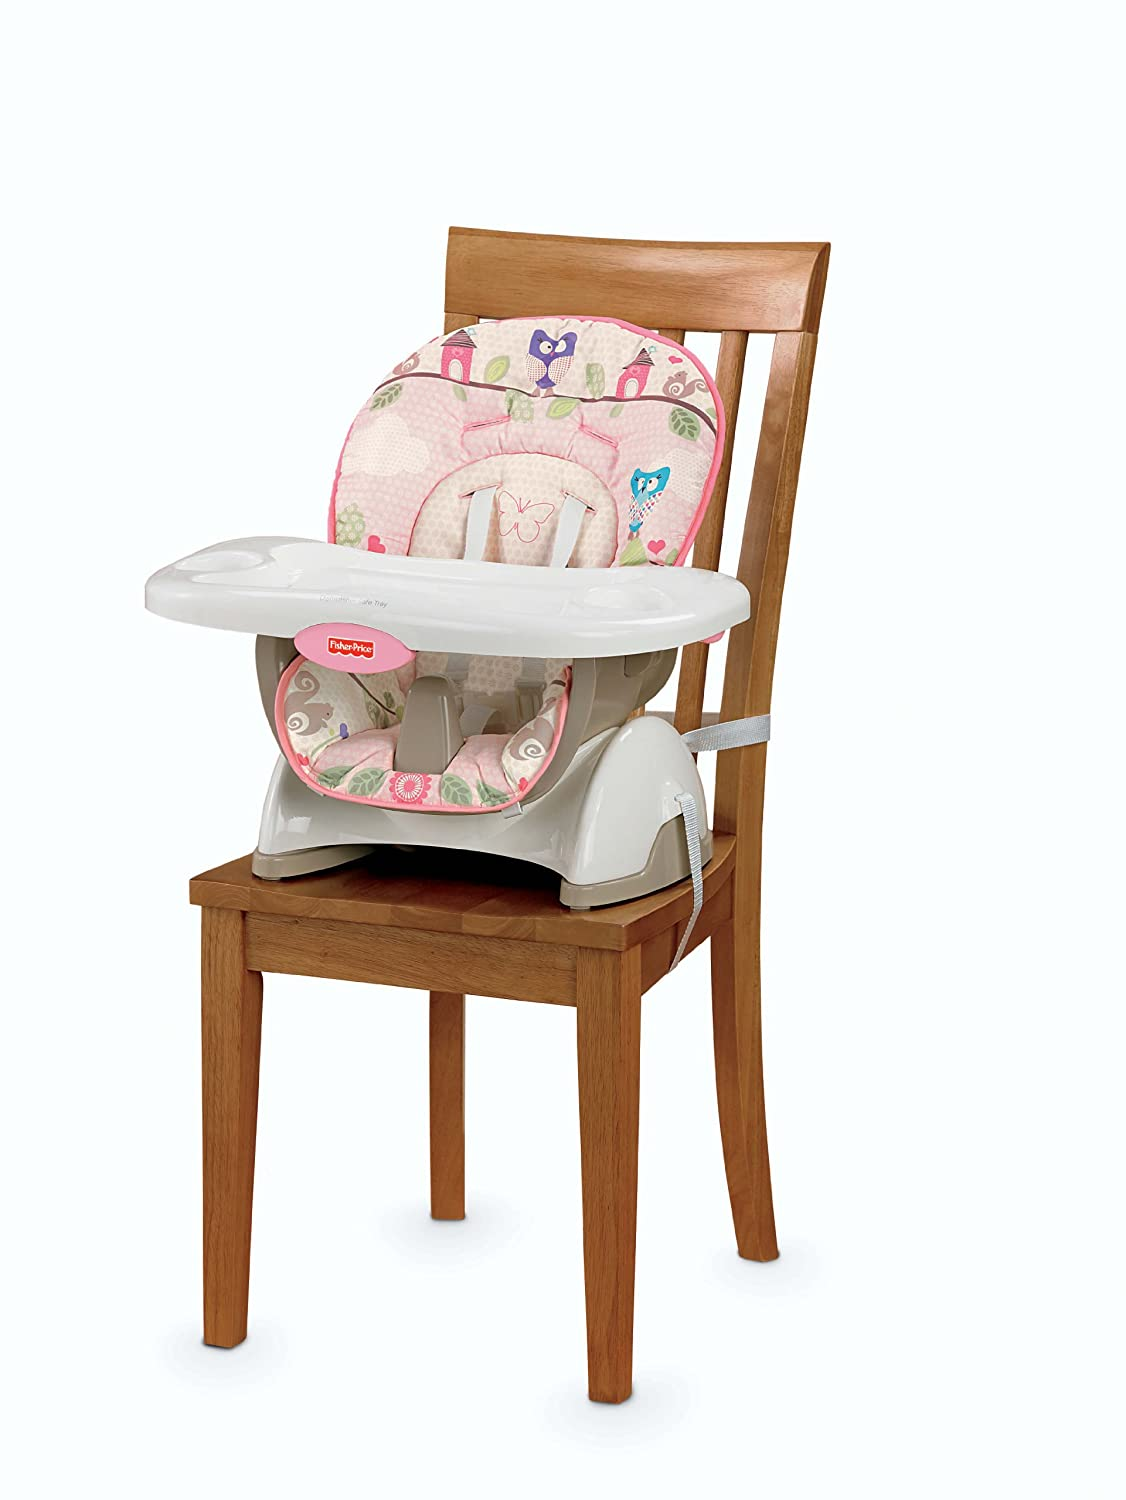 amazon com fisher price space saver high chair pink childrens